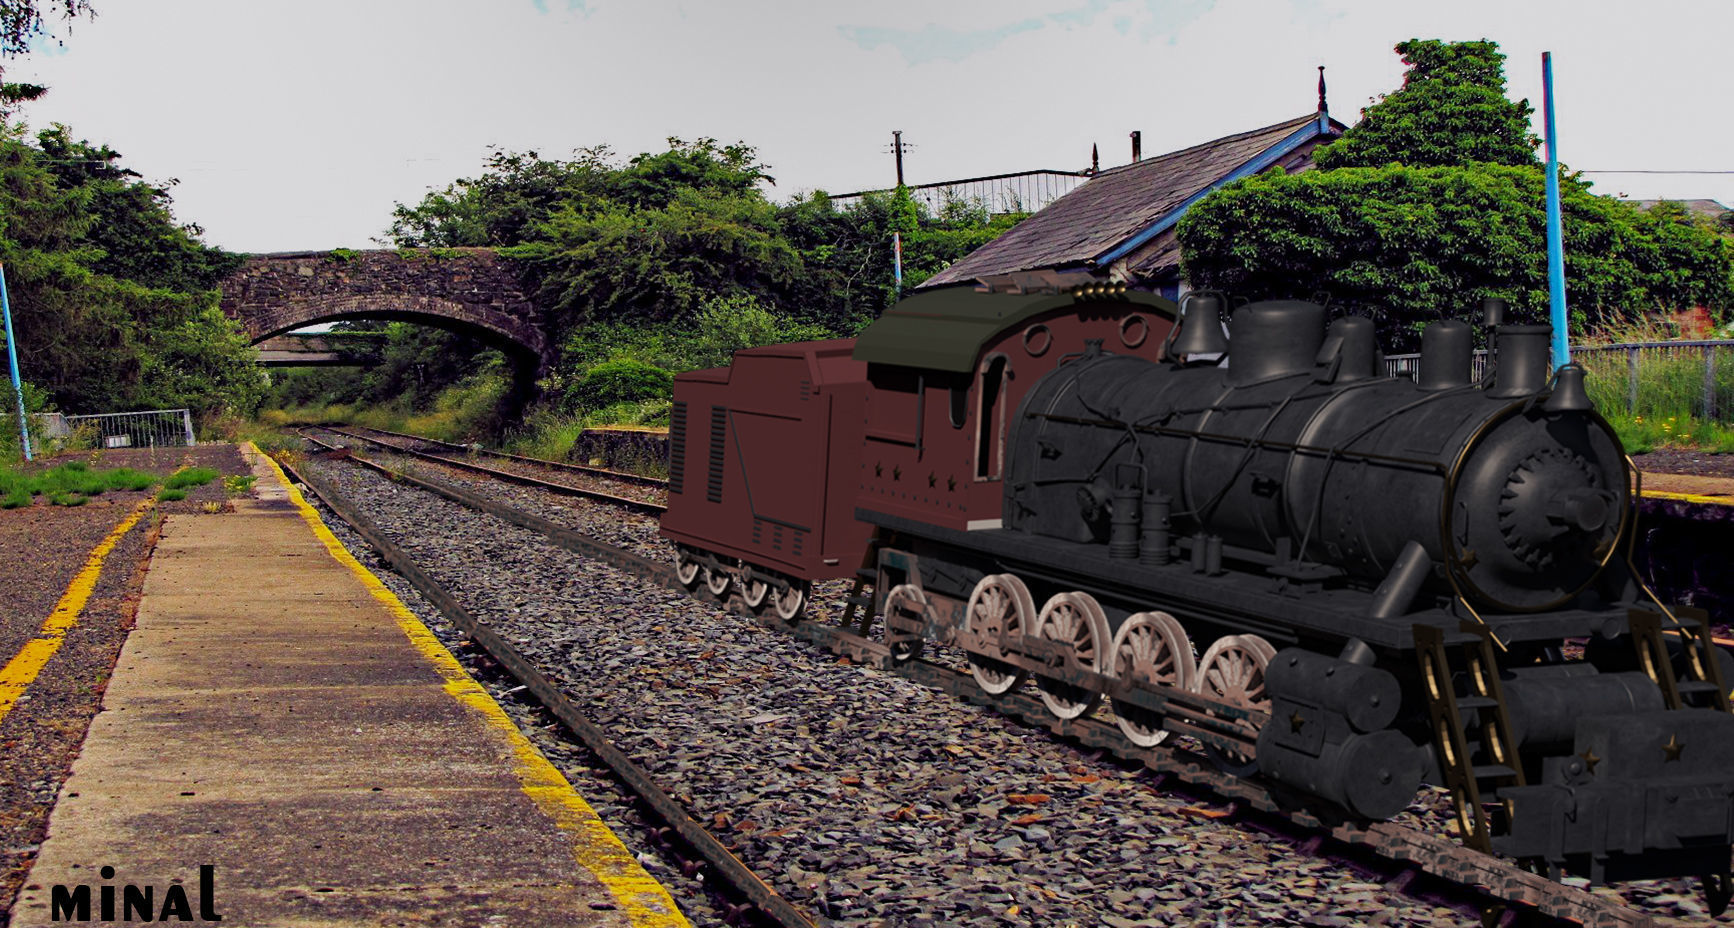 3d model of train composted in photoshop | 3D model